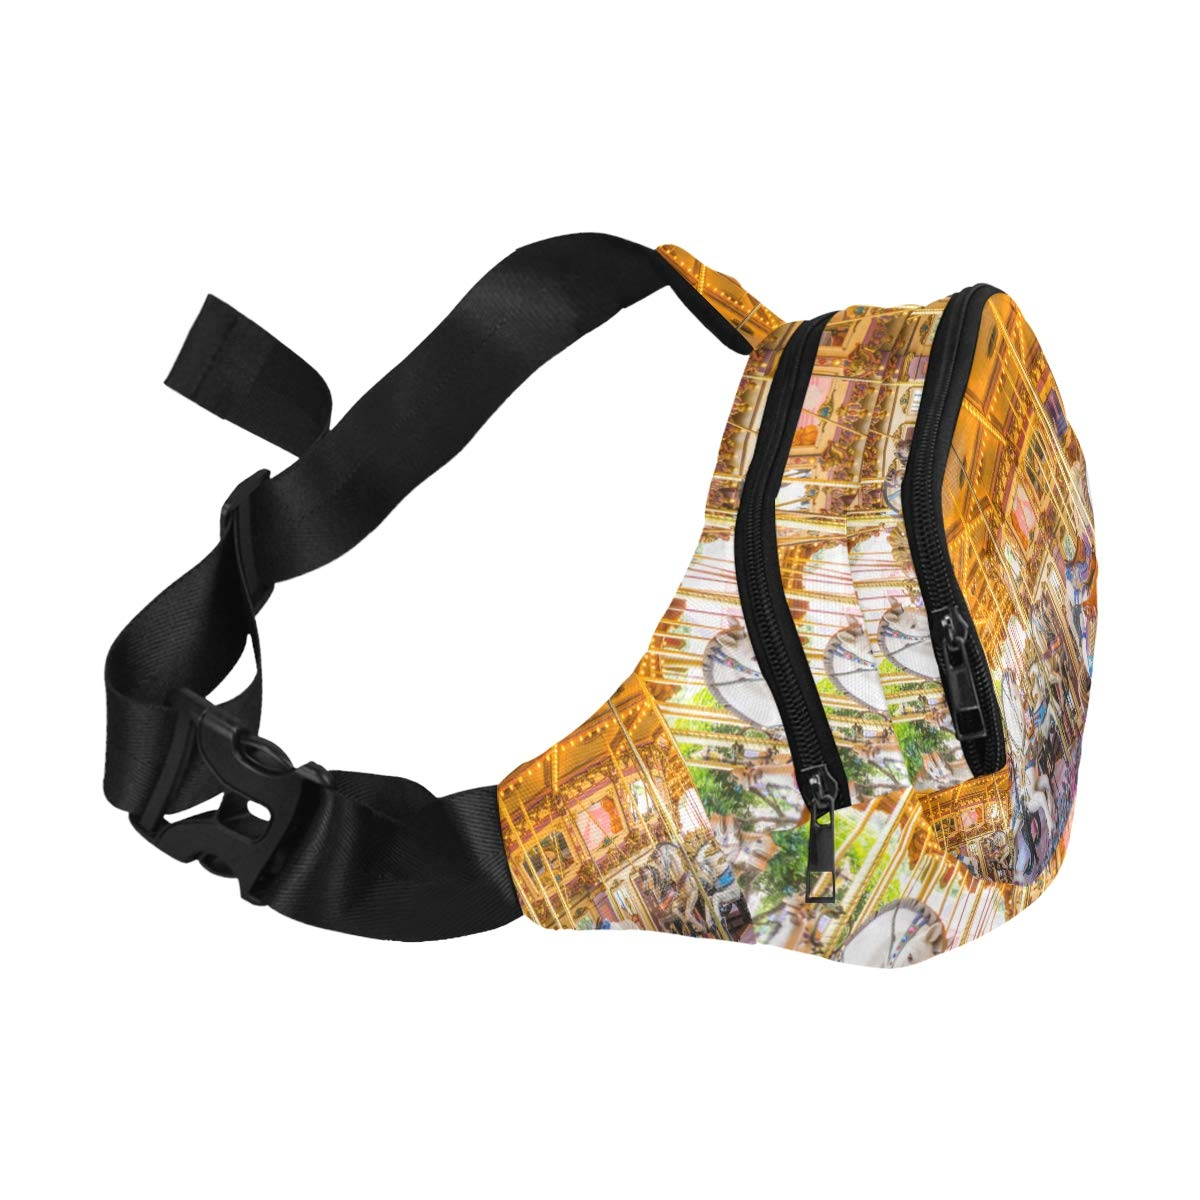 An Old Fashioned Carousel Fenny Packs Waist Bags Adjustable Belt Waterproof Nylon Travel Running Sport Vacation Party For Men Women Boys Girls Kids